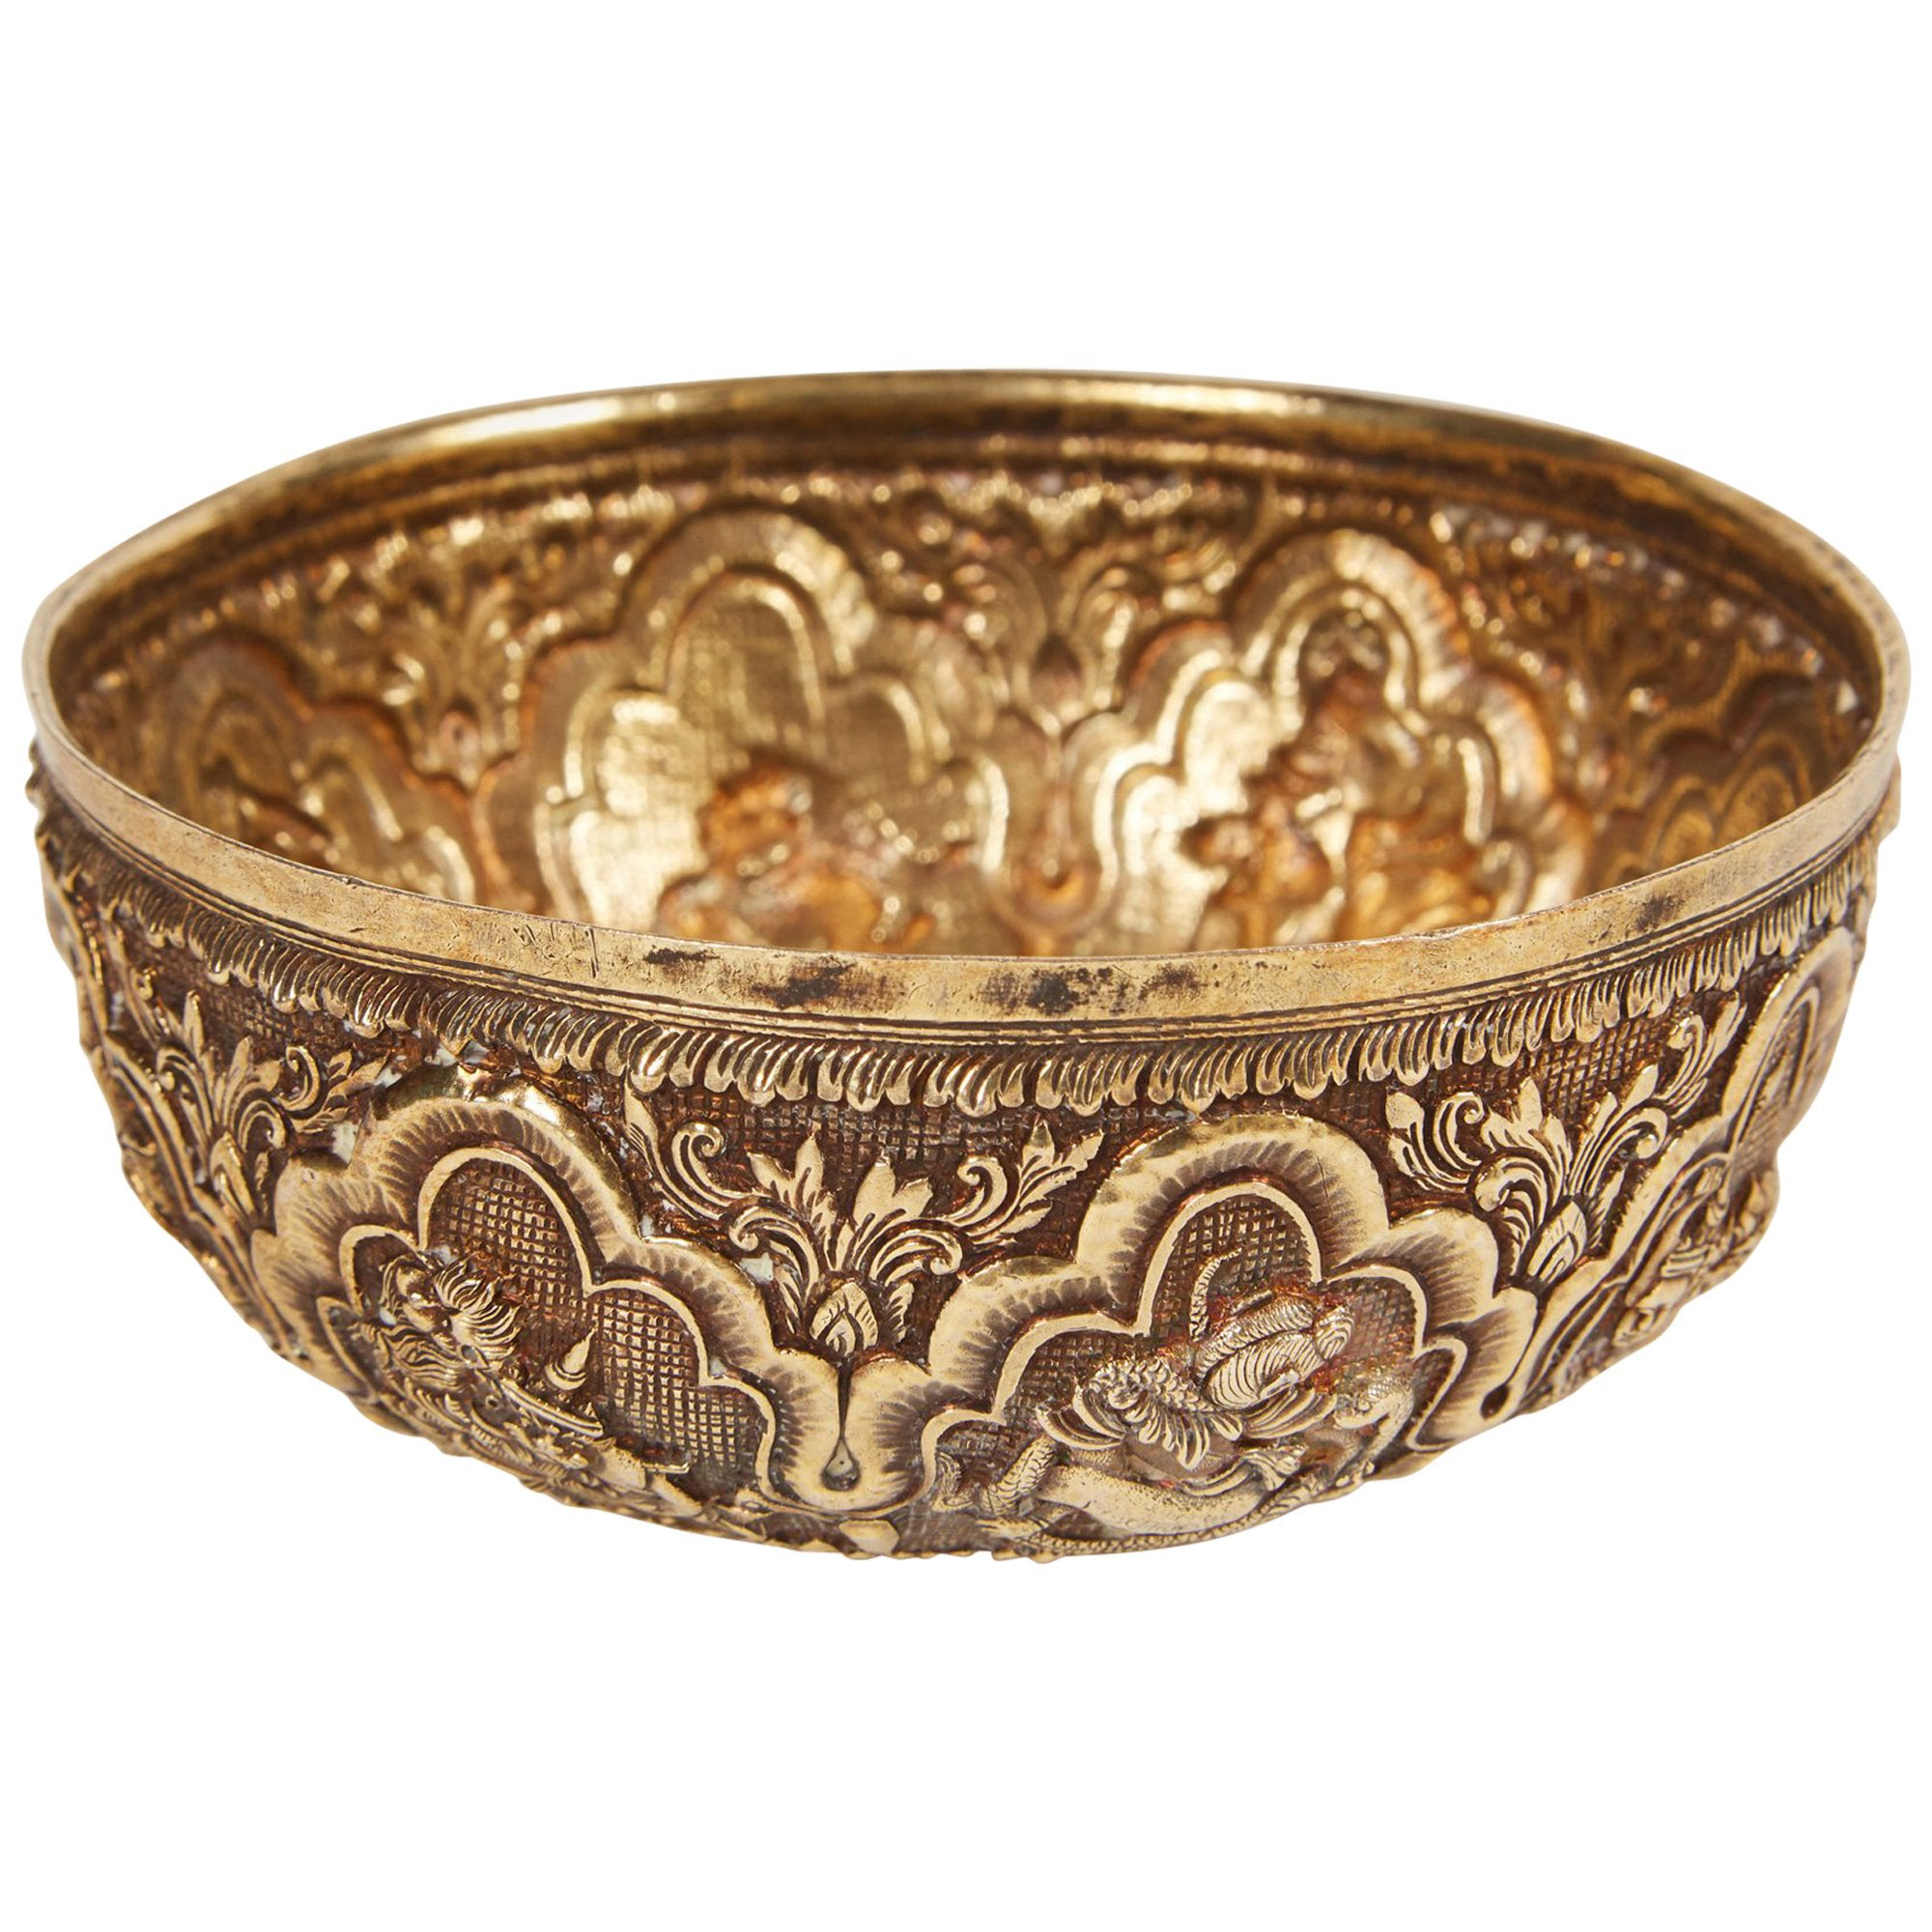 Small 20th Century Indian Bowl with Relief